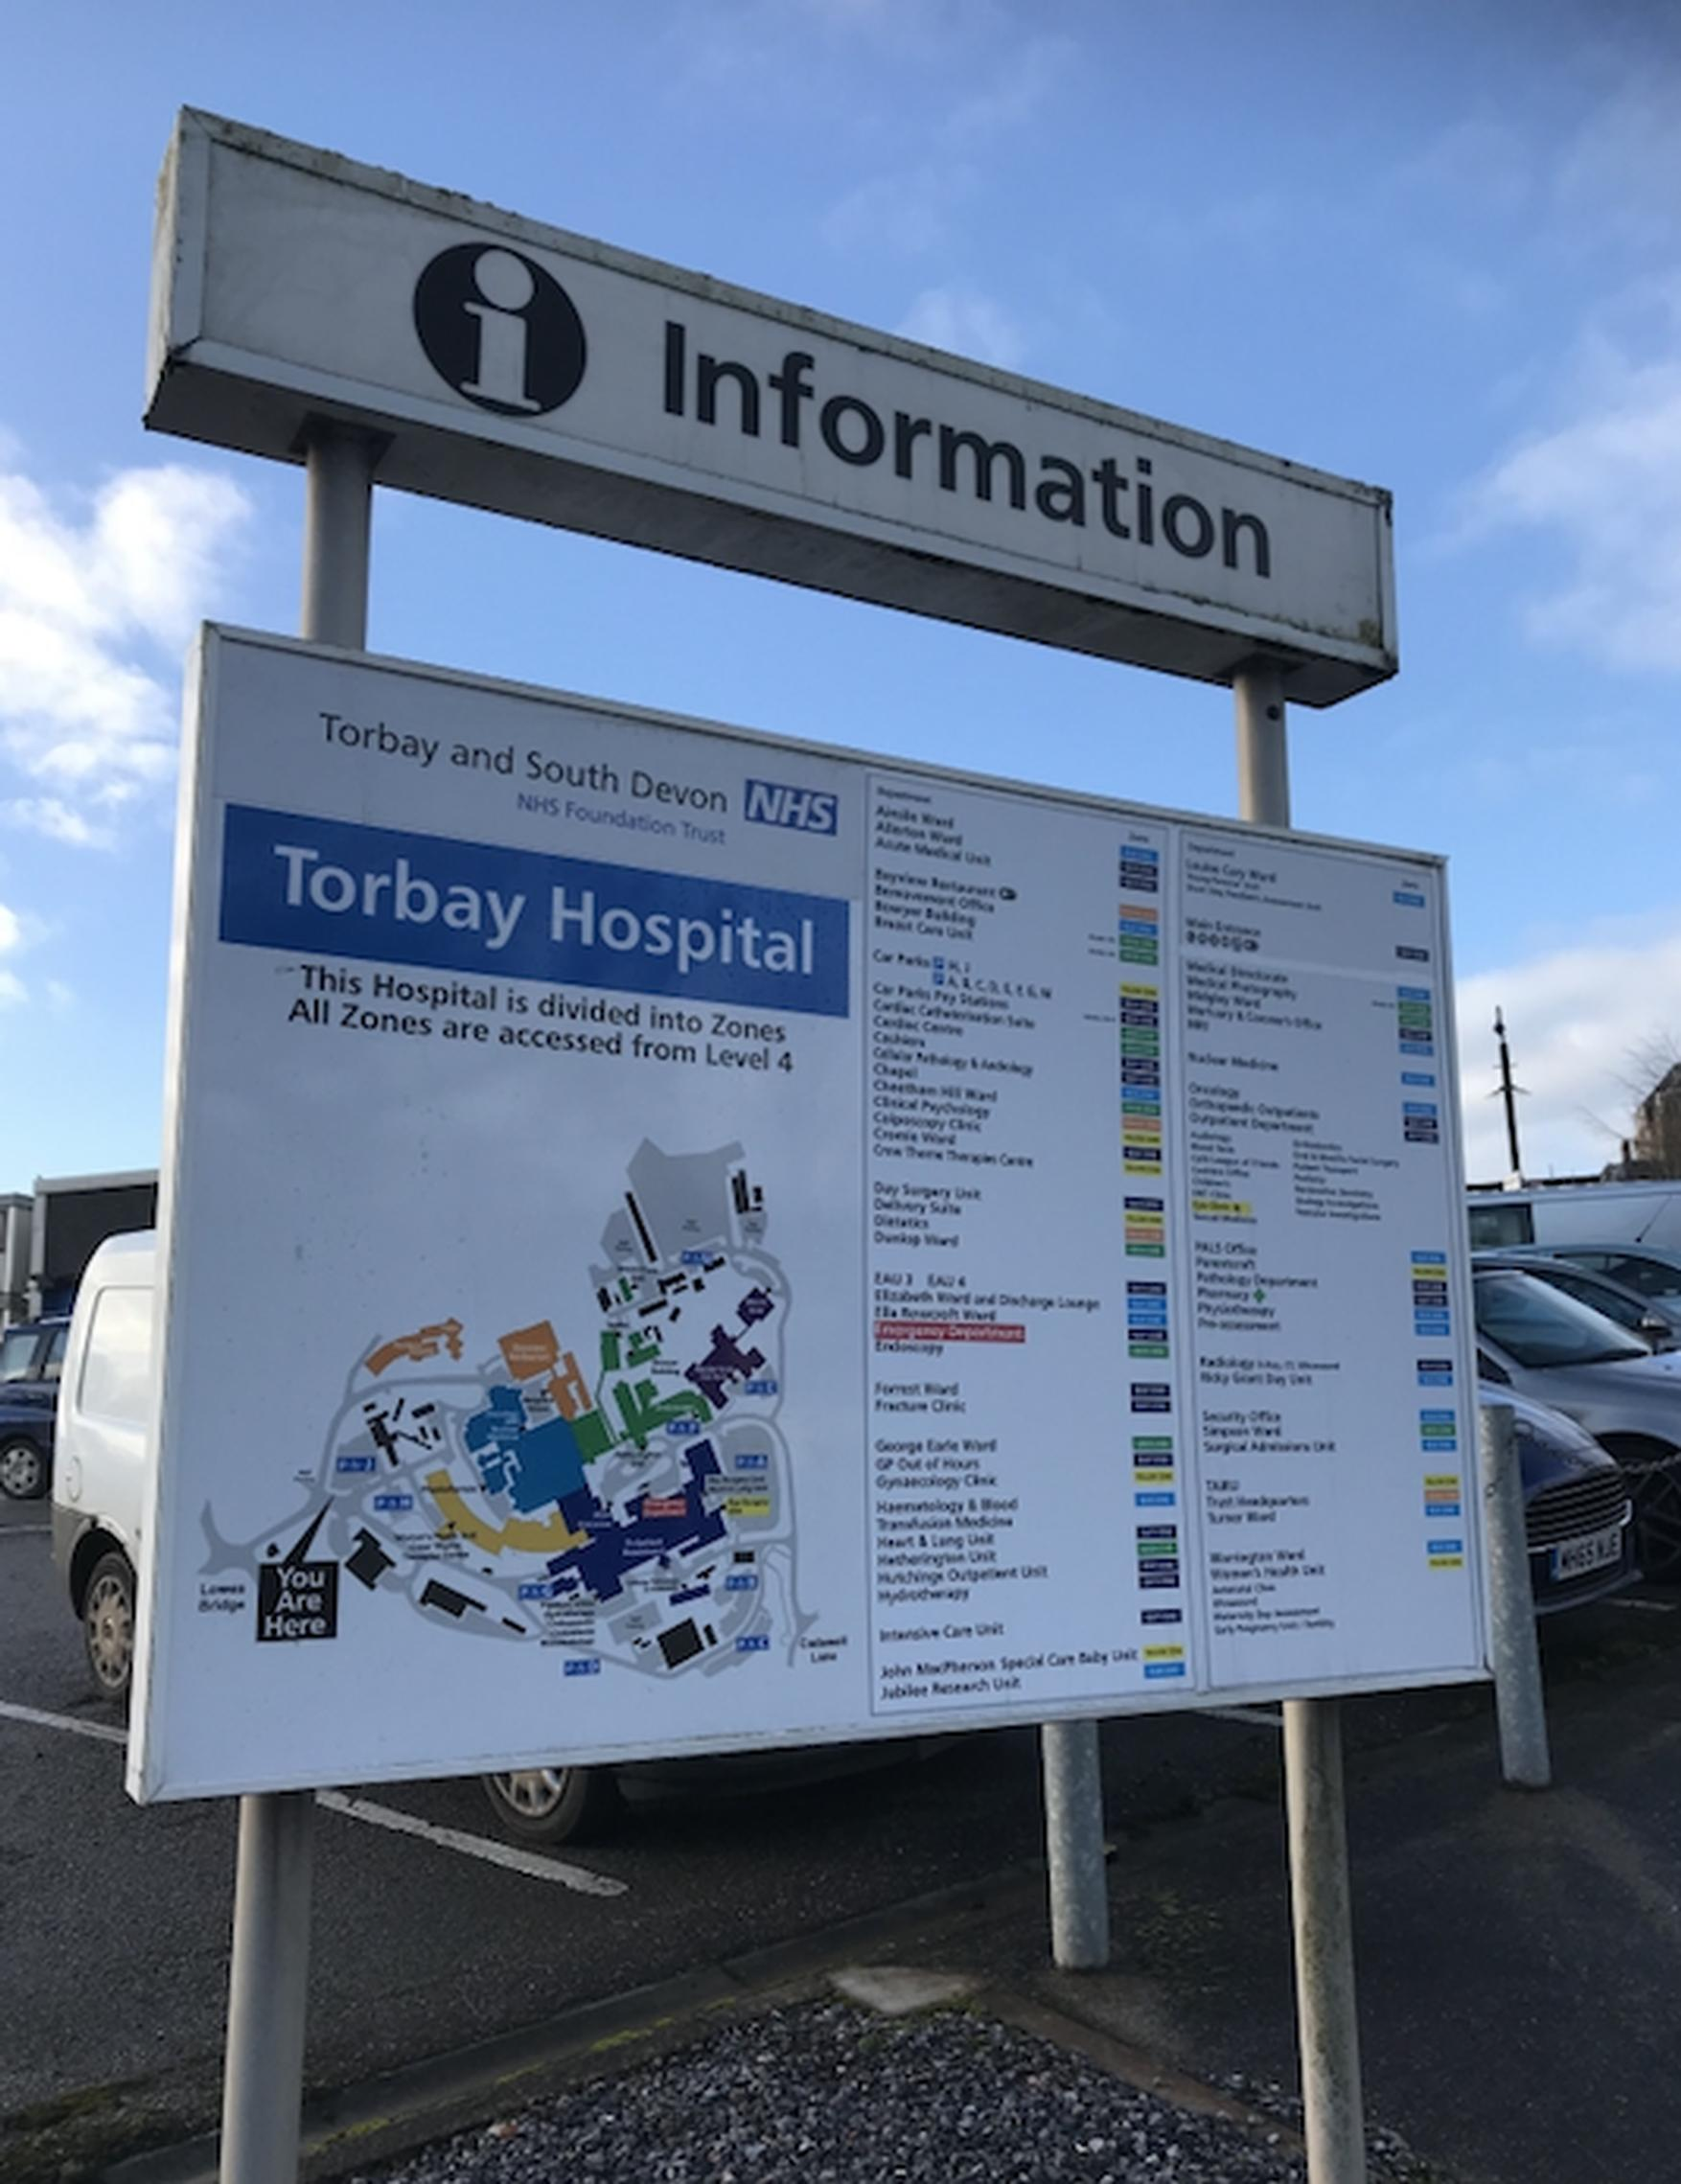 Torbay Hospital is a complex site